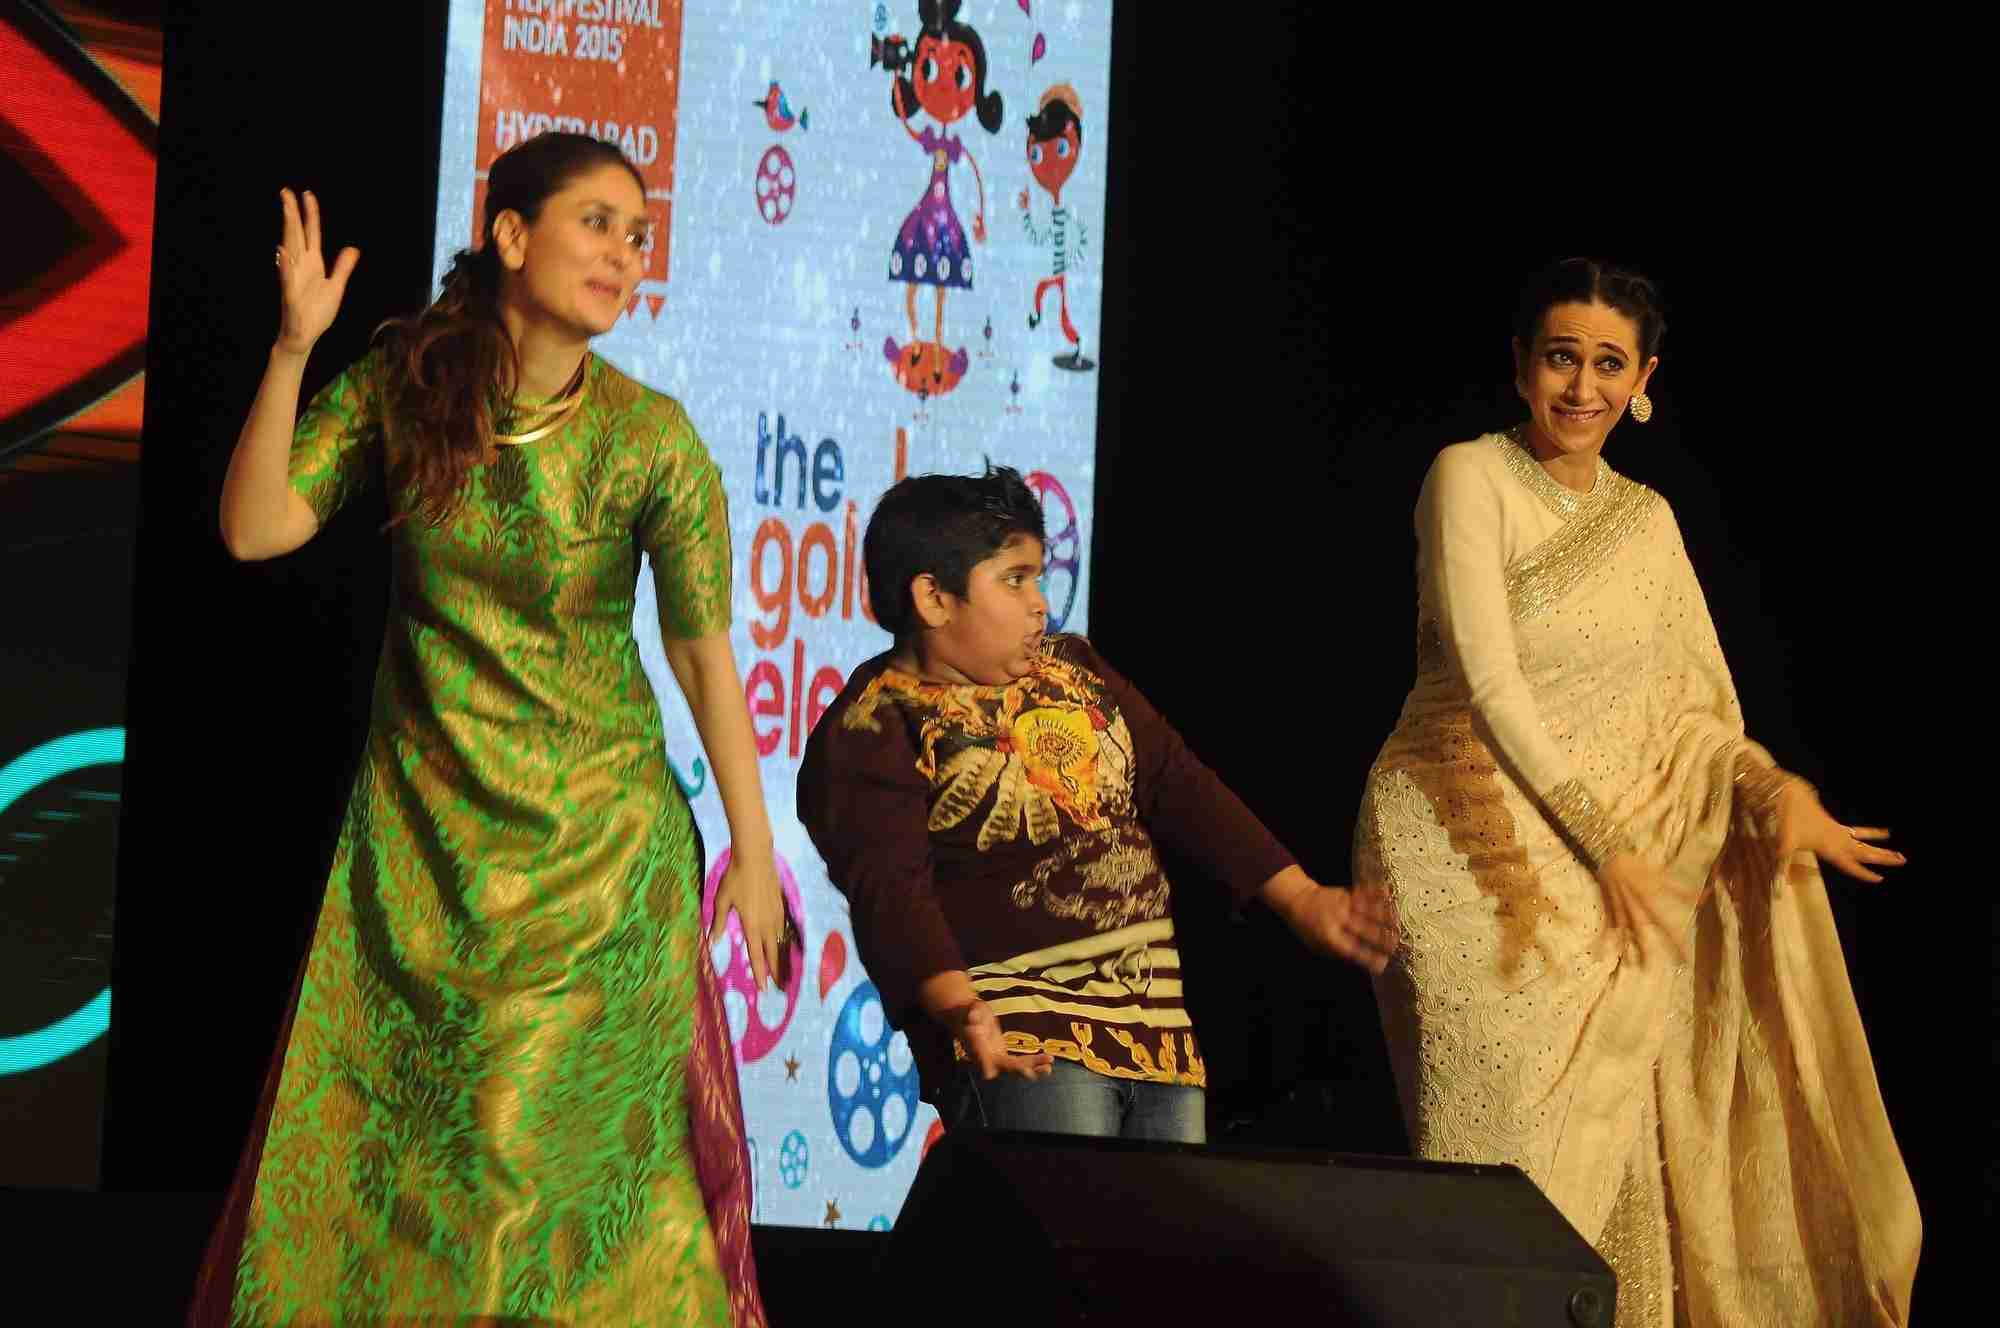 Kapoor Sisters at Childrens Film Fest 2015 in Hyderabad